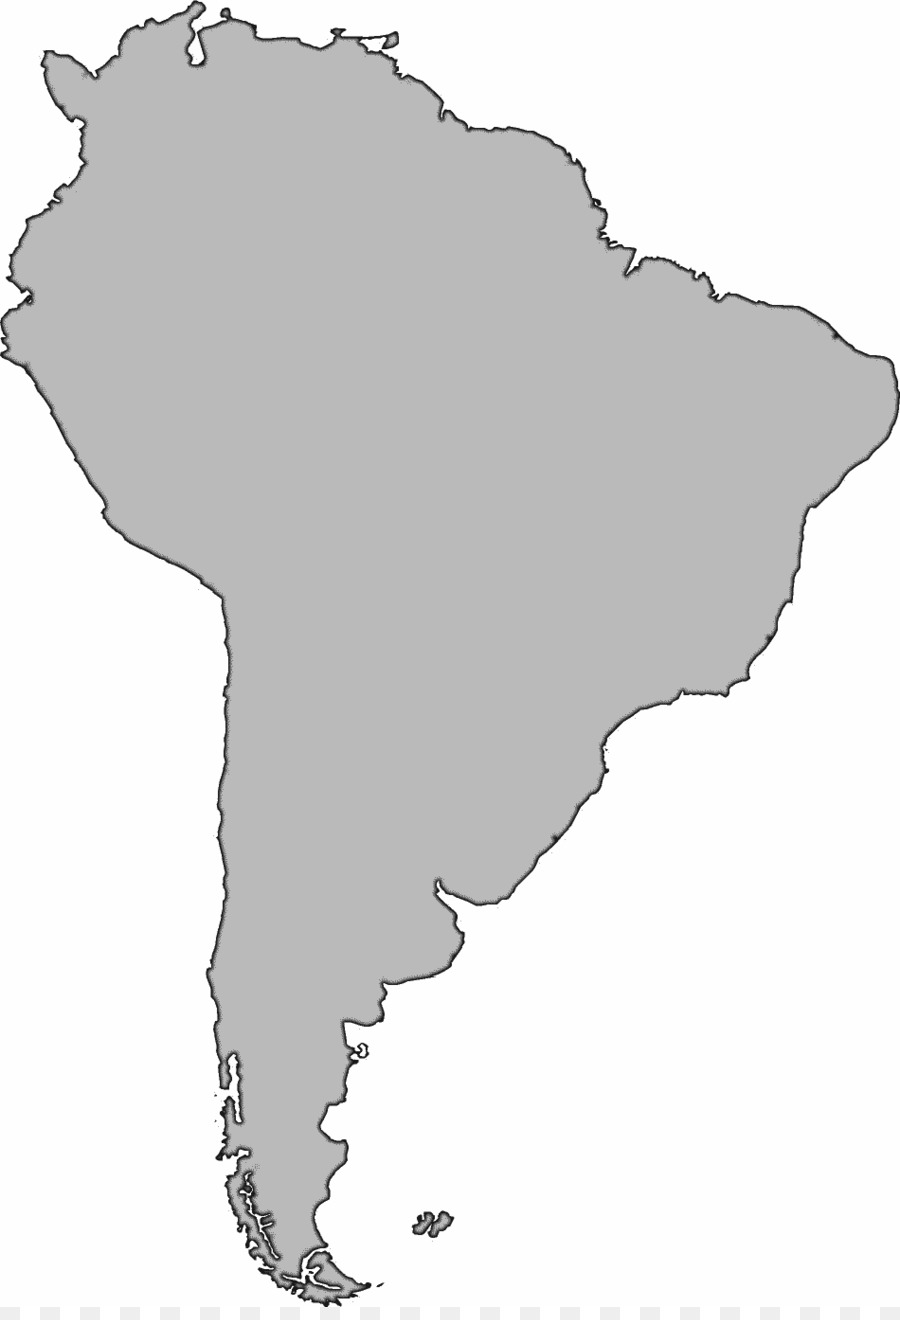 United States South America Blank map Clip art - Latin American ...